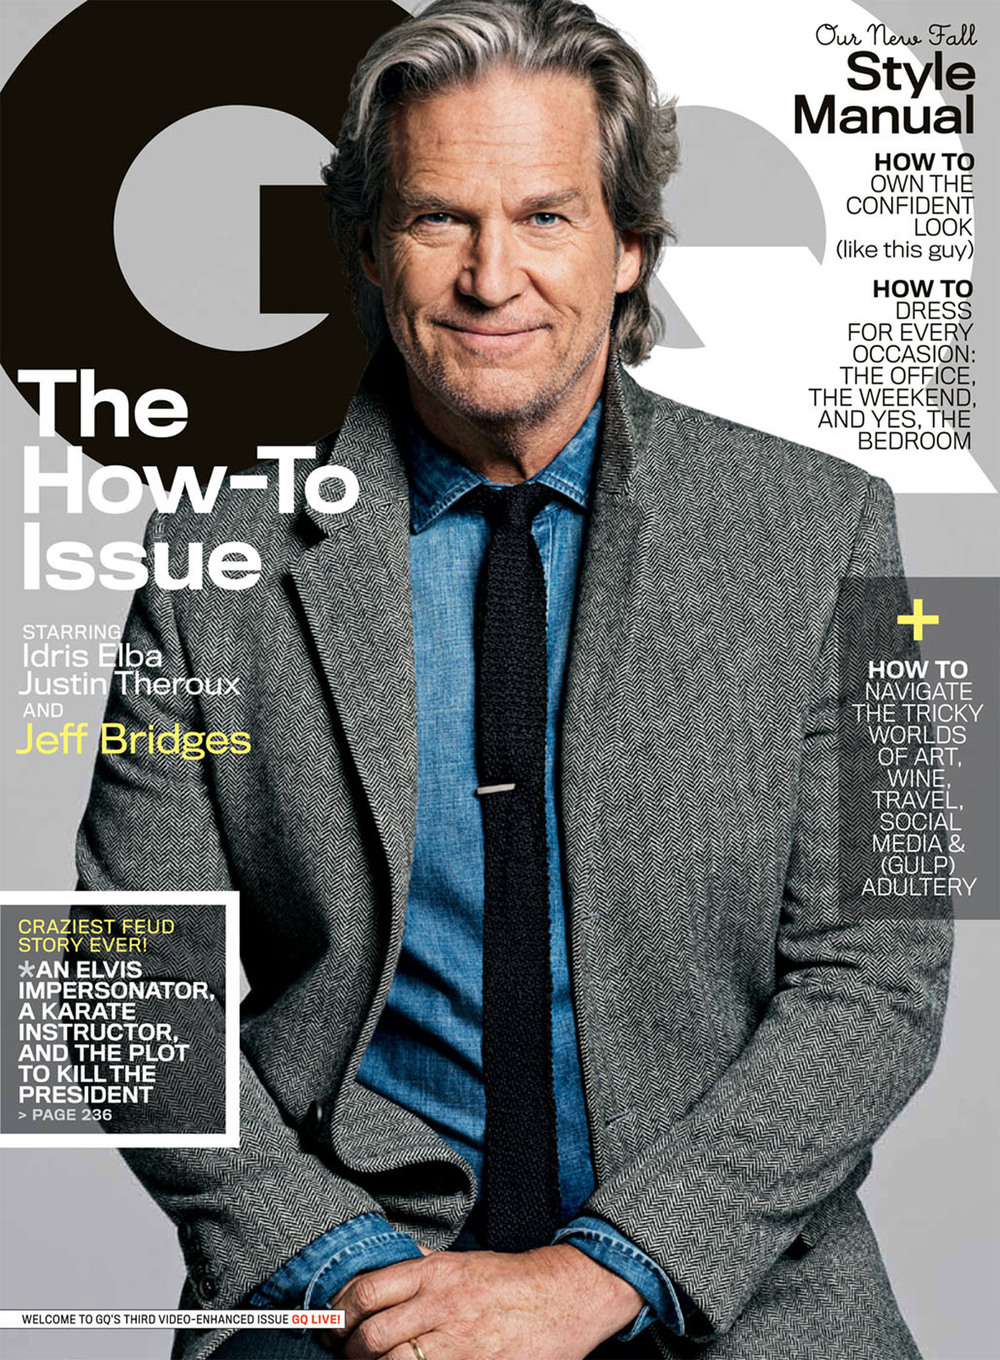 gq-jeff-bridges-1yhigh.jpg